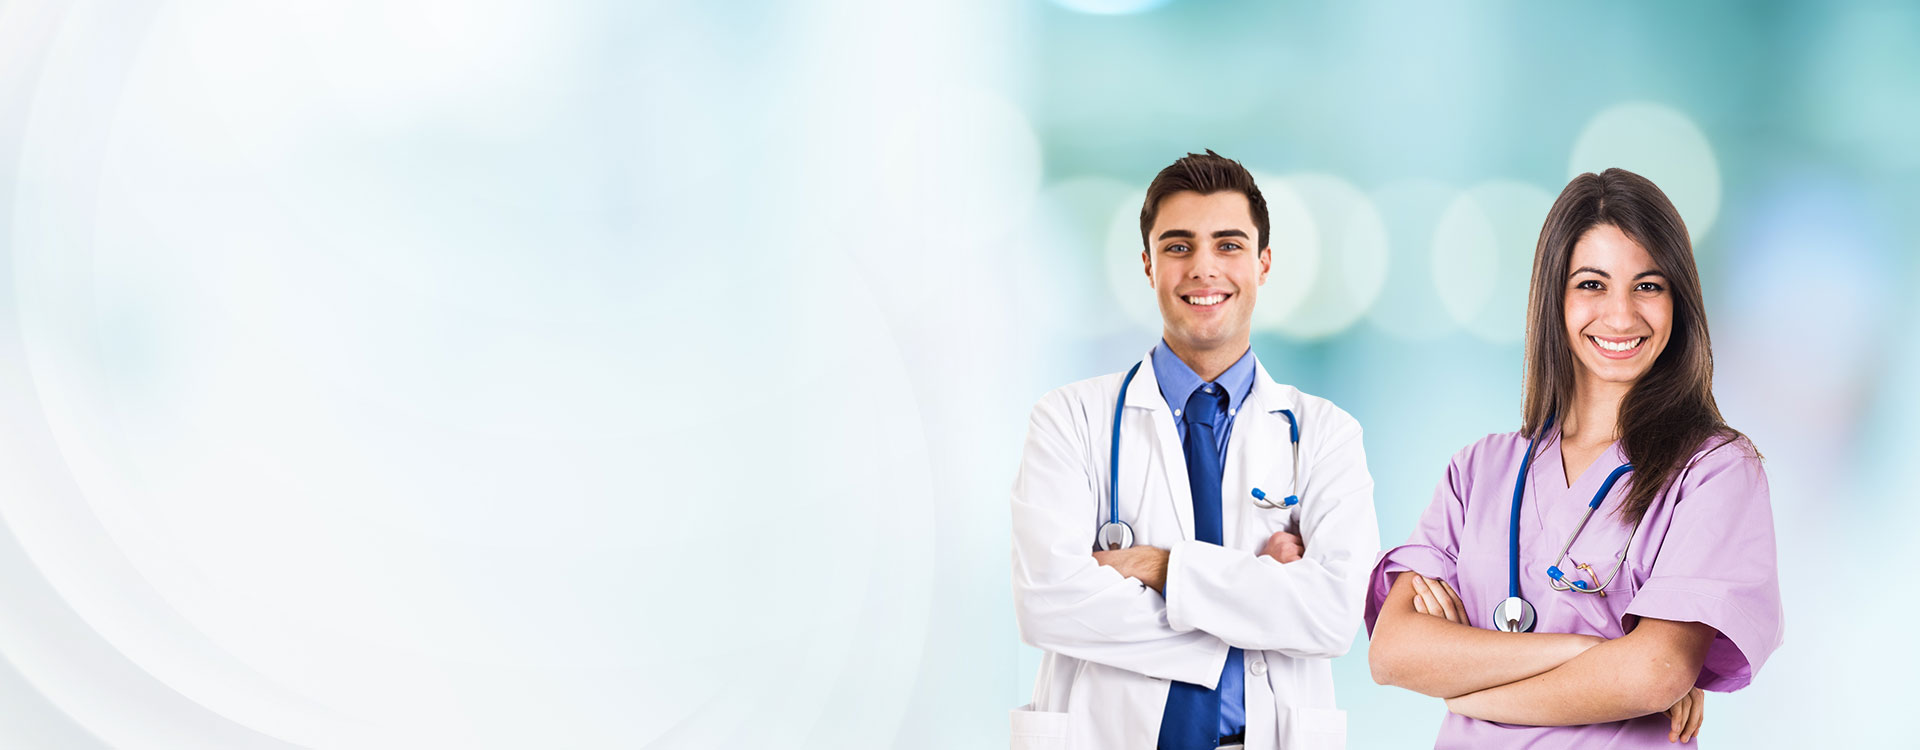 Medical Education   Gold Coast   Get professional real-world training for the Health industry